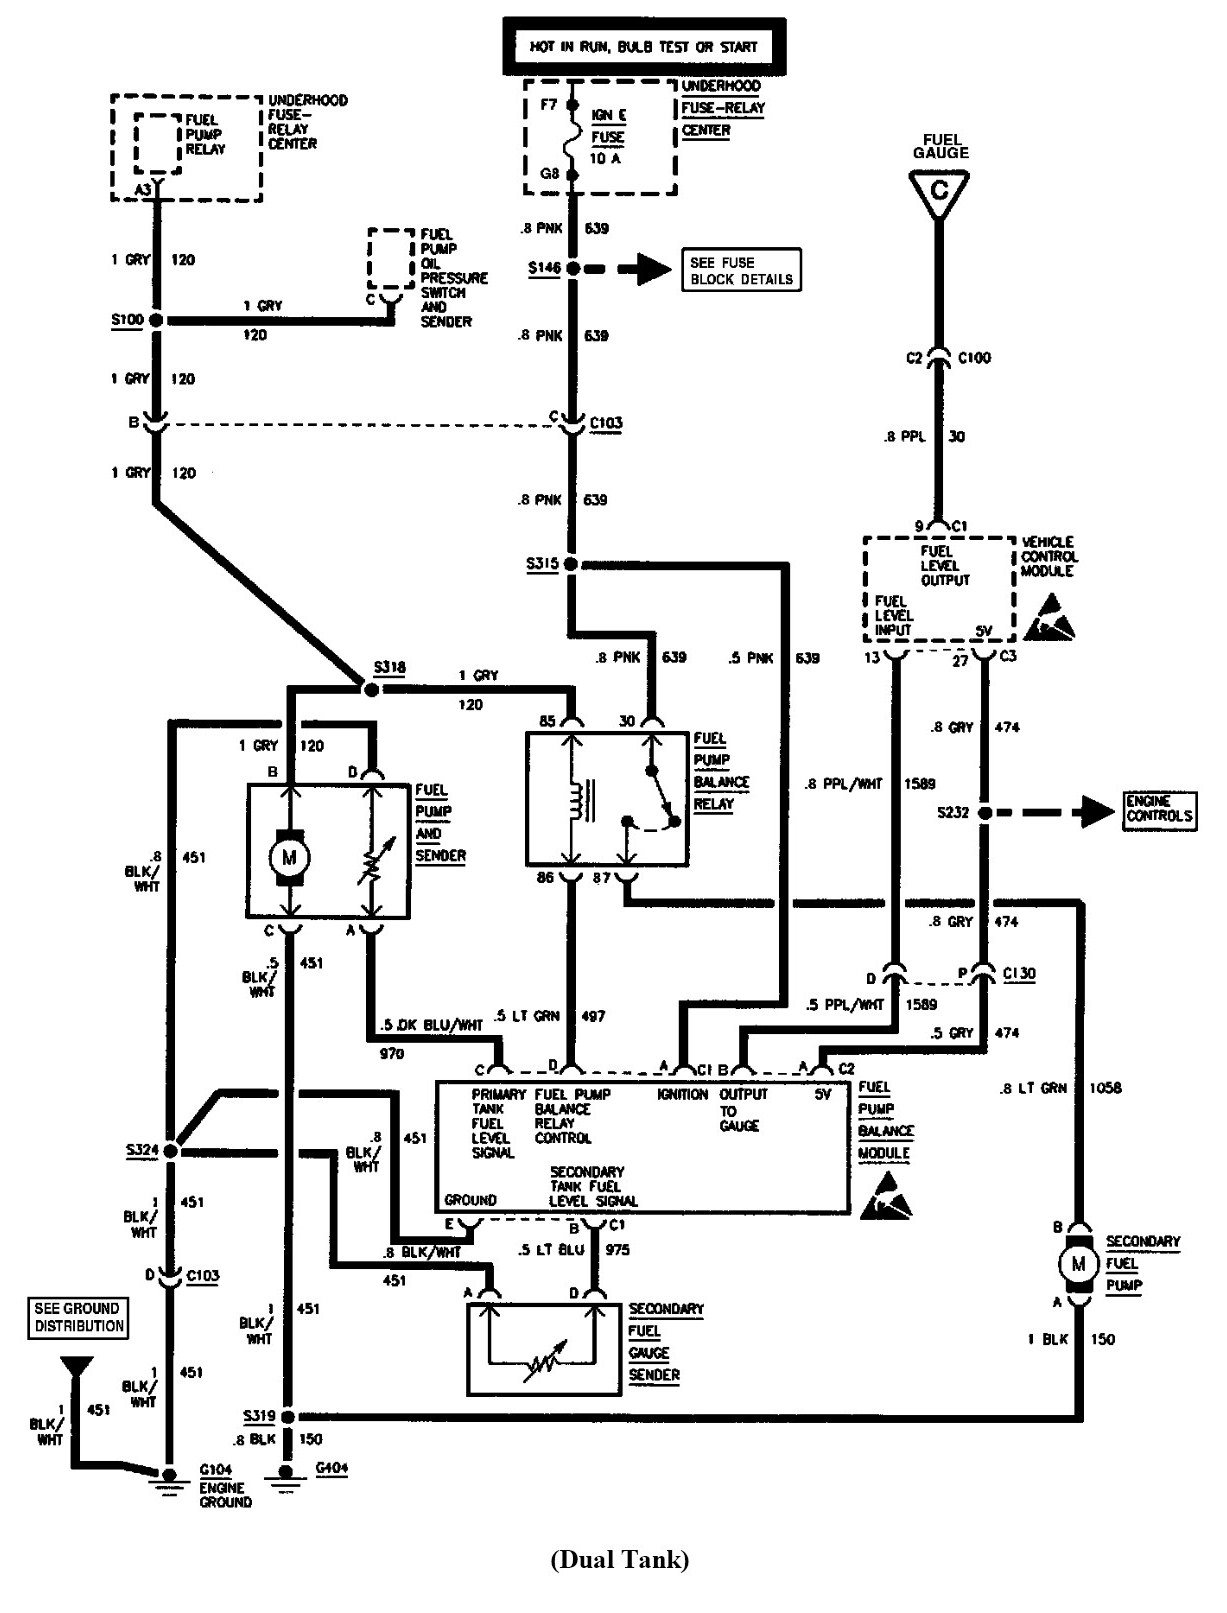 Wiring Diagram For 1999 Gmc Serria Intank Fuel Pump